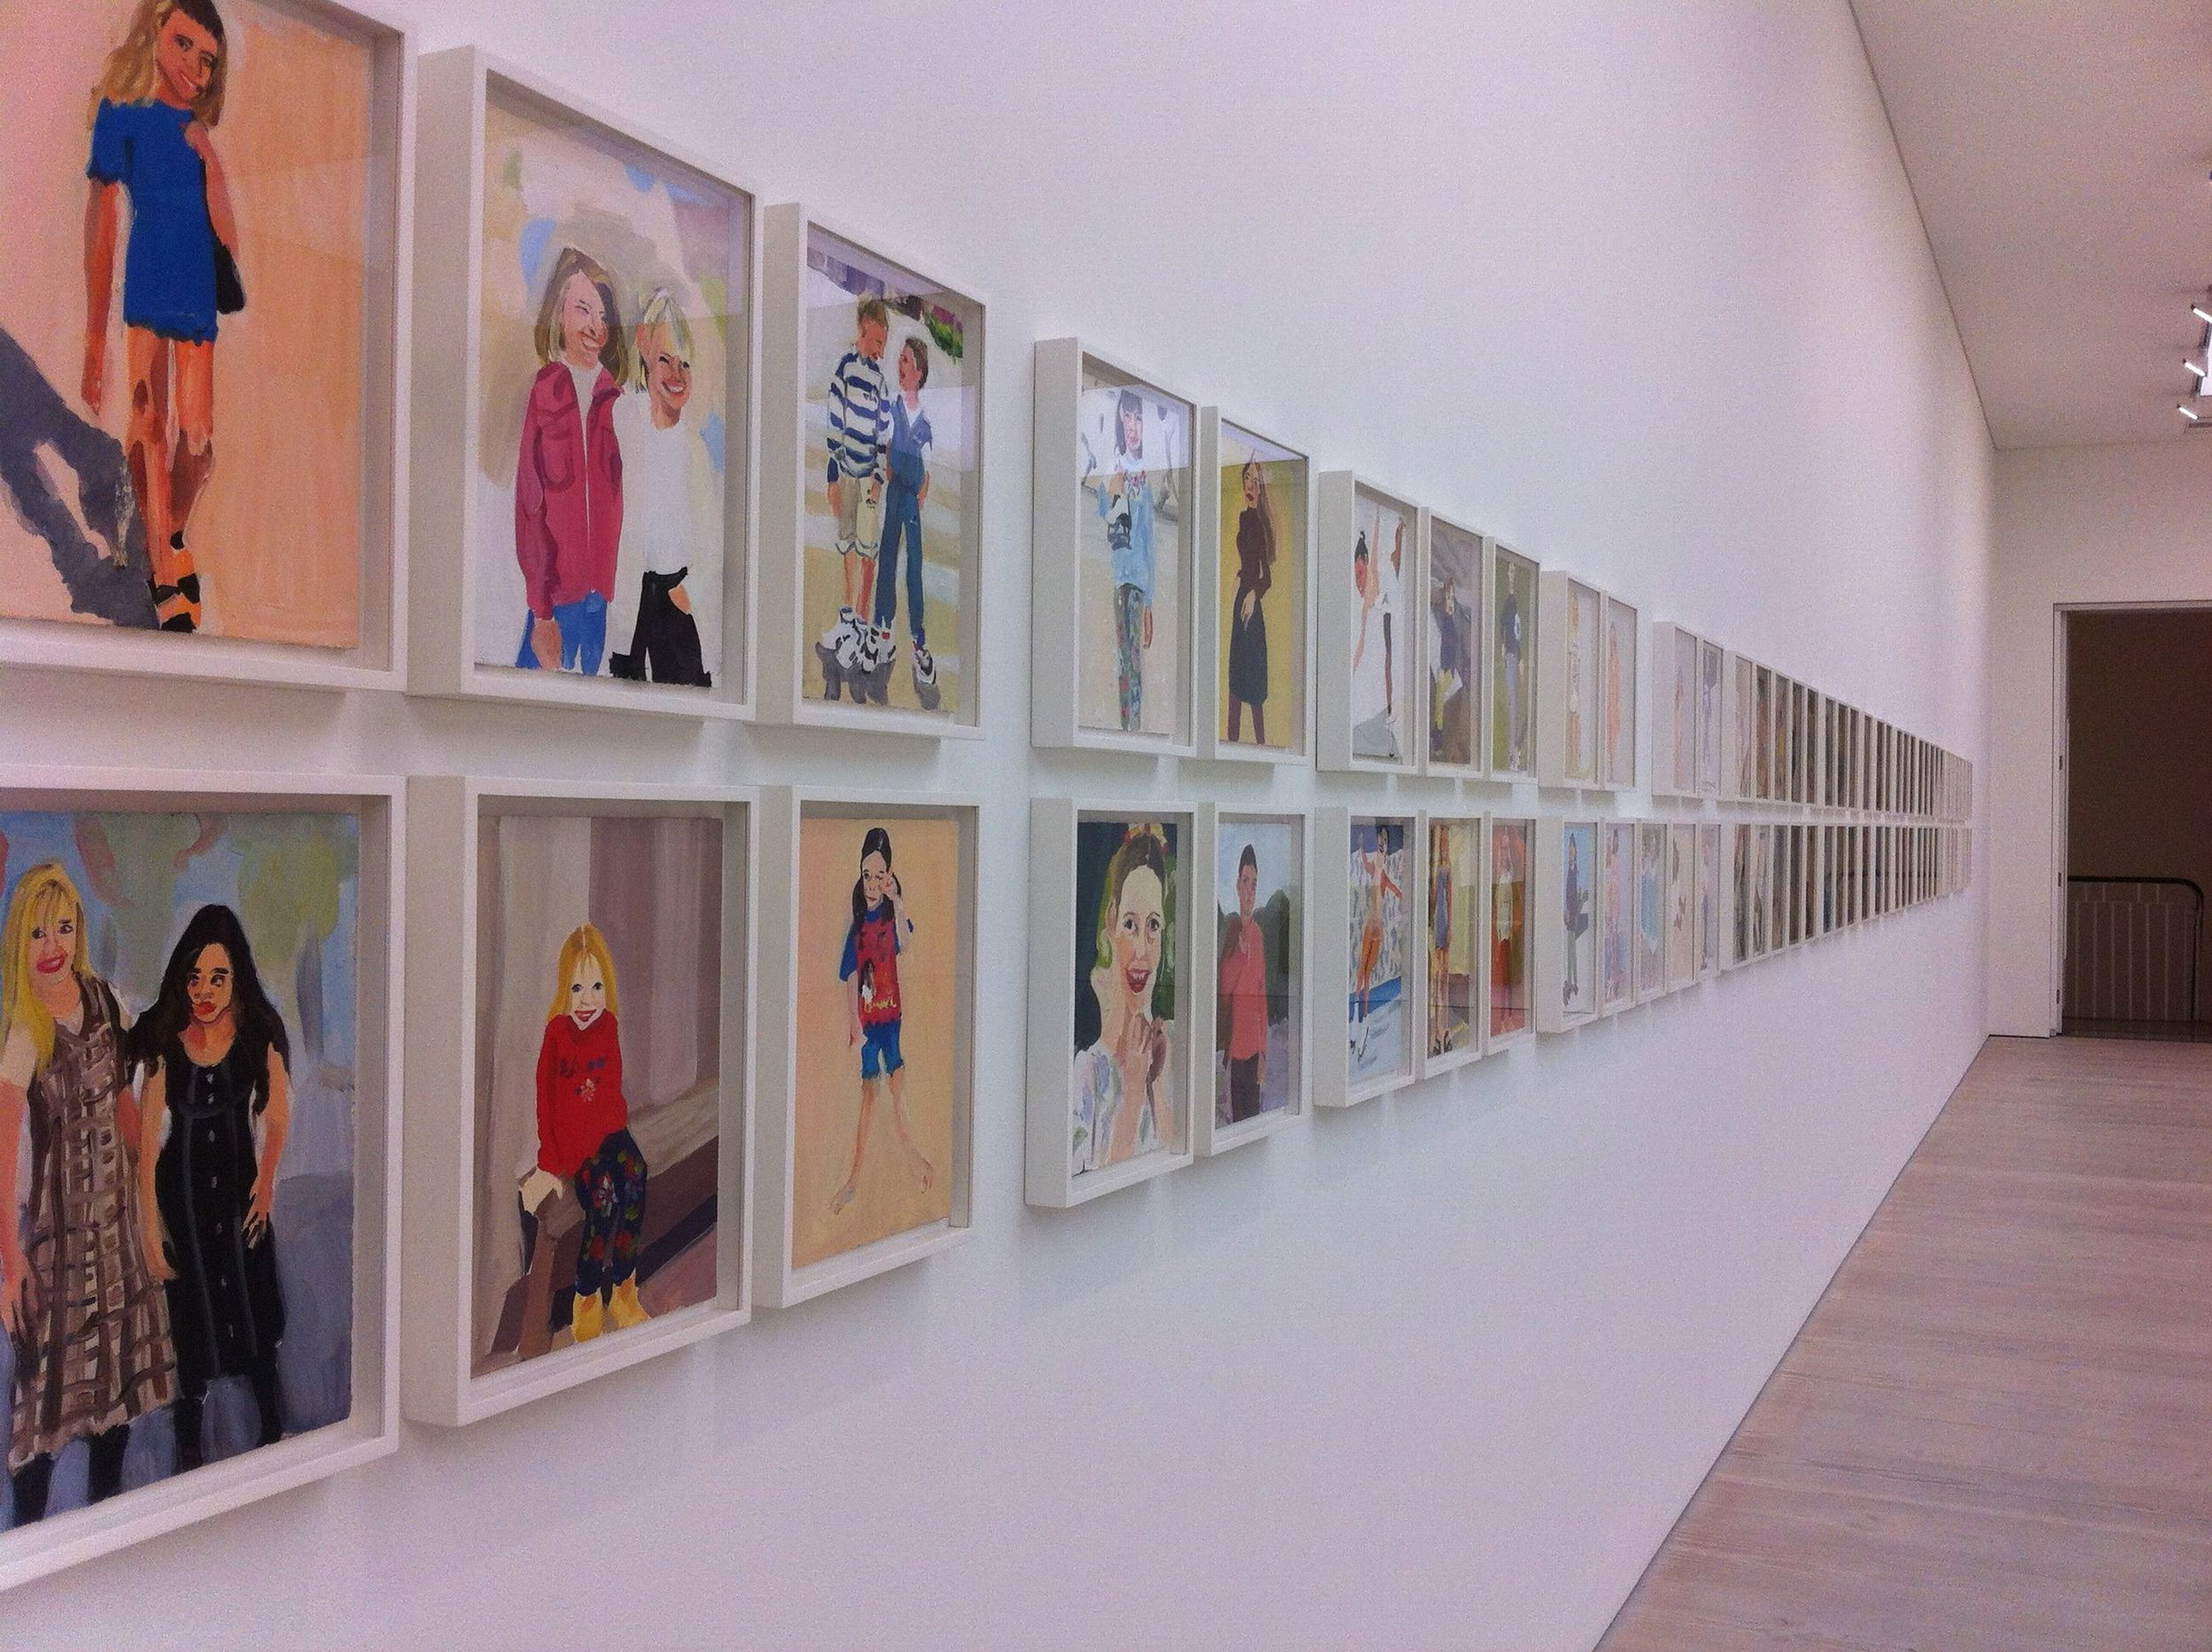 Body Language - Chantal Joffe @ The Saatchi Gallery